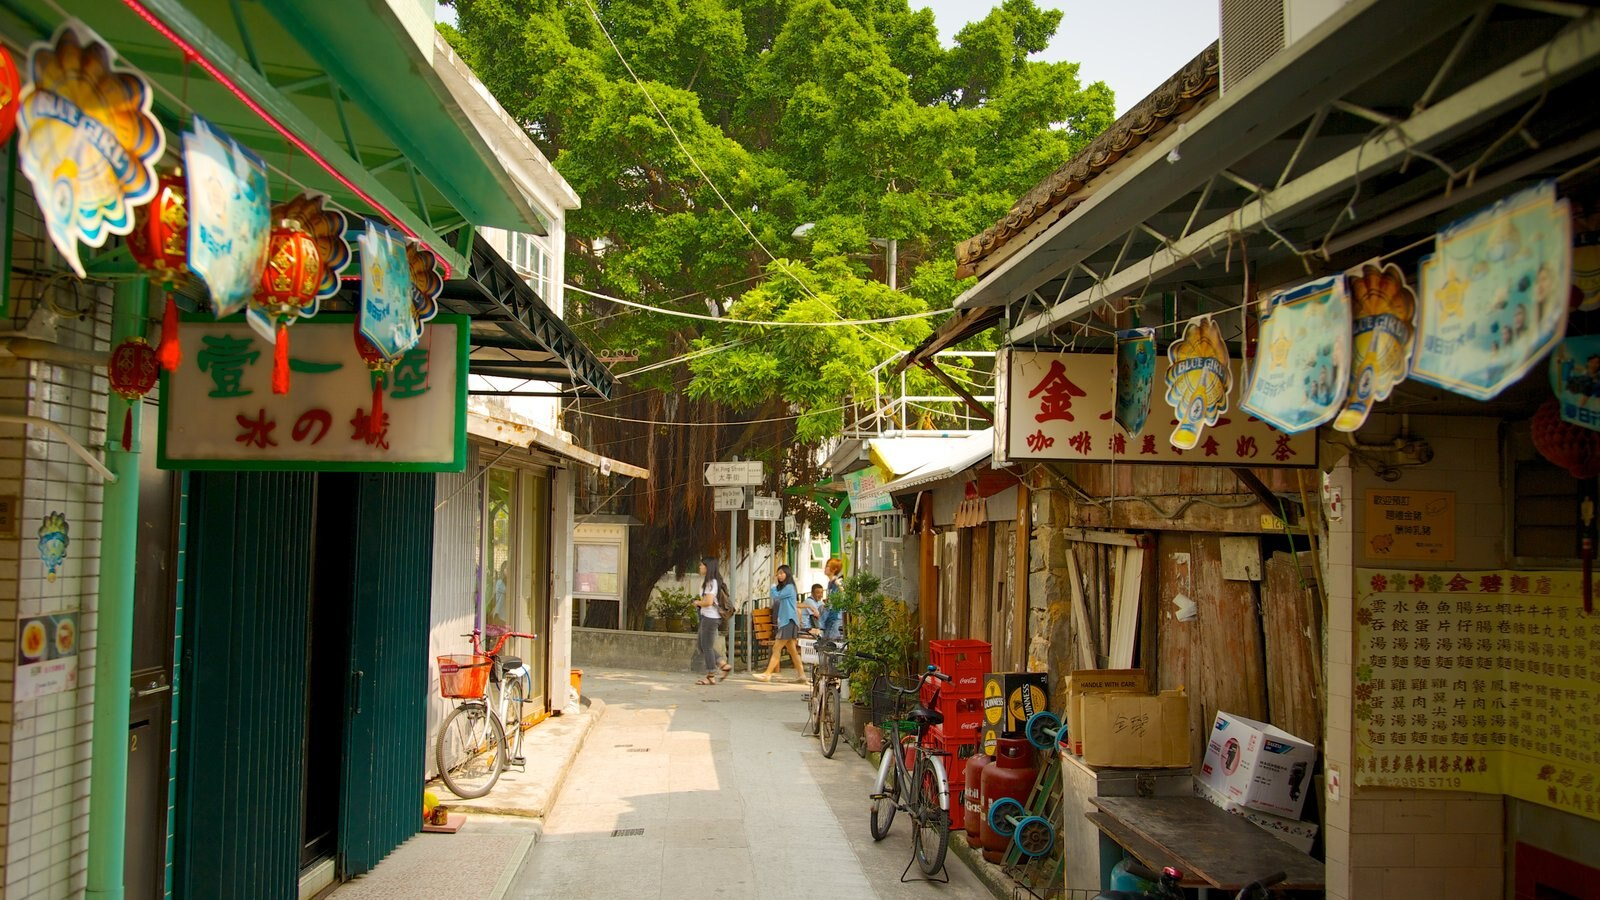 Tai O Fishing Village which includes a small town or village